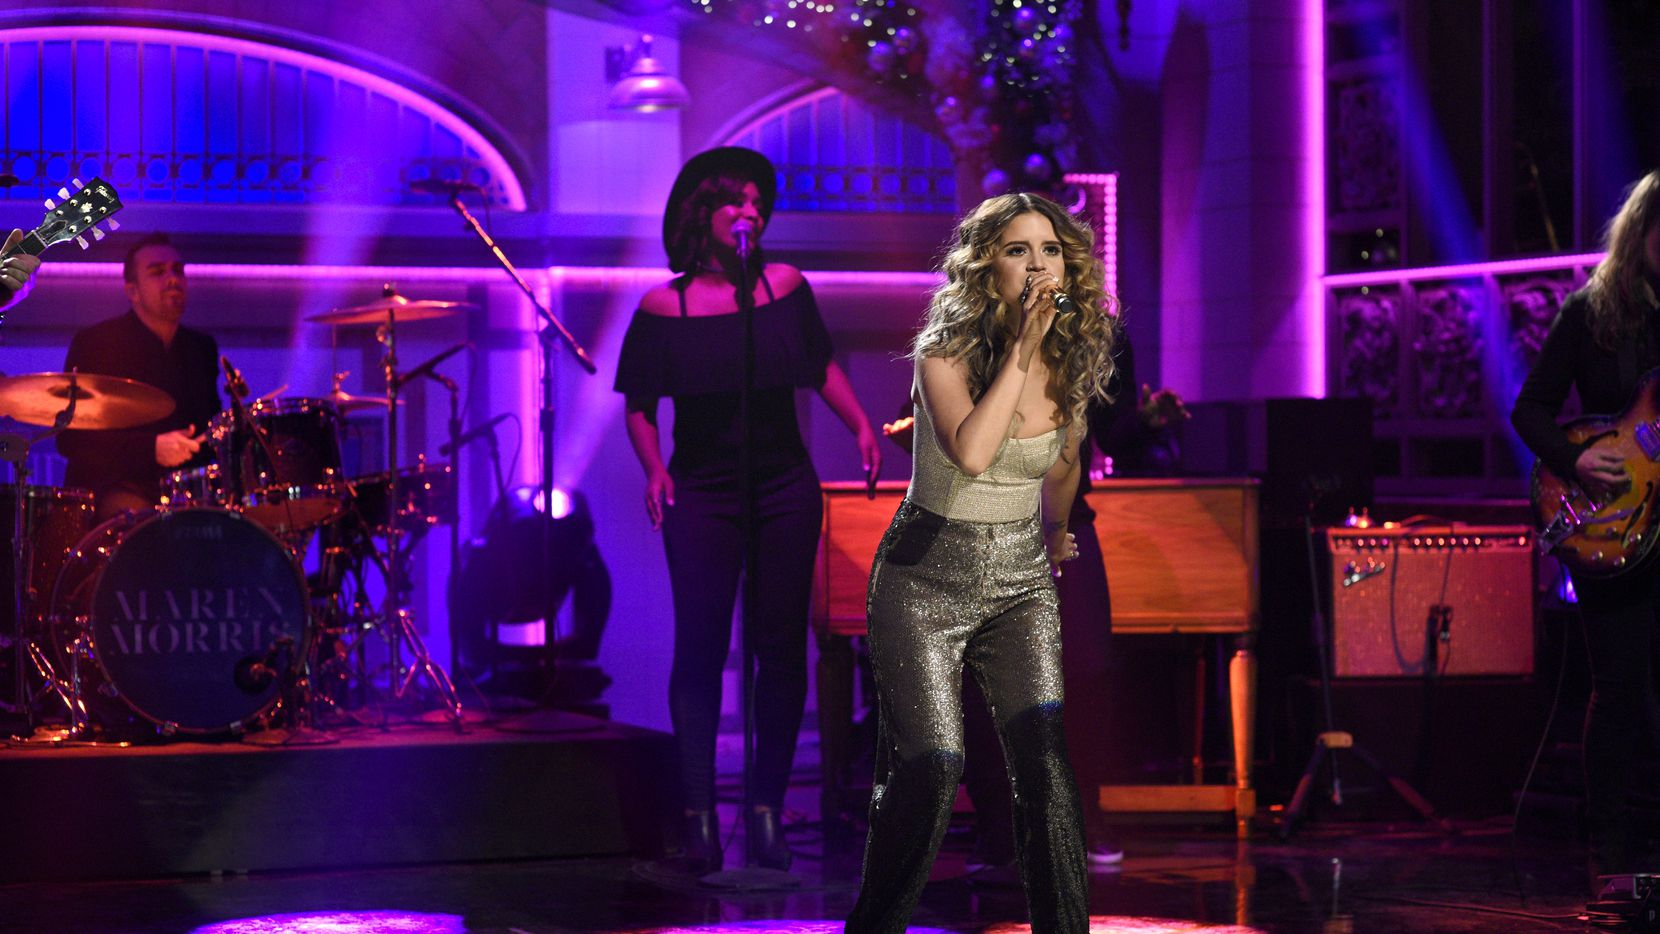 """Maren Morris was the musical guest on """"Saturday Night Live"""" on Dec. 10, just days after receiving a Grammy nomination for Best New Artist."""